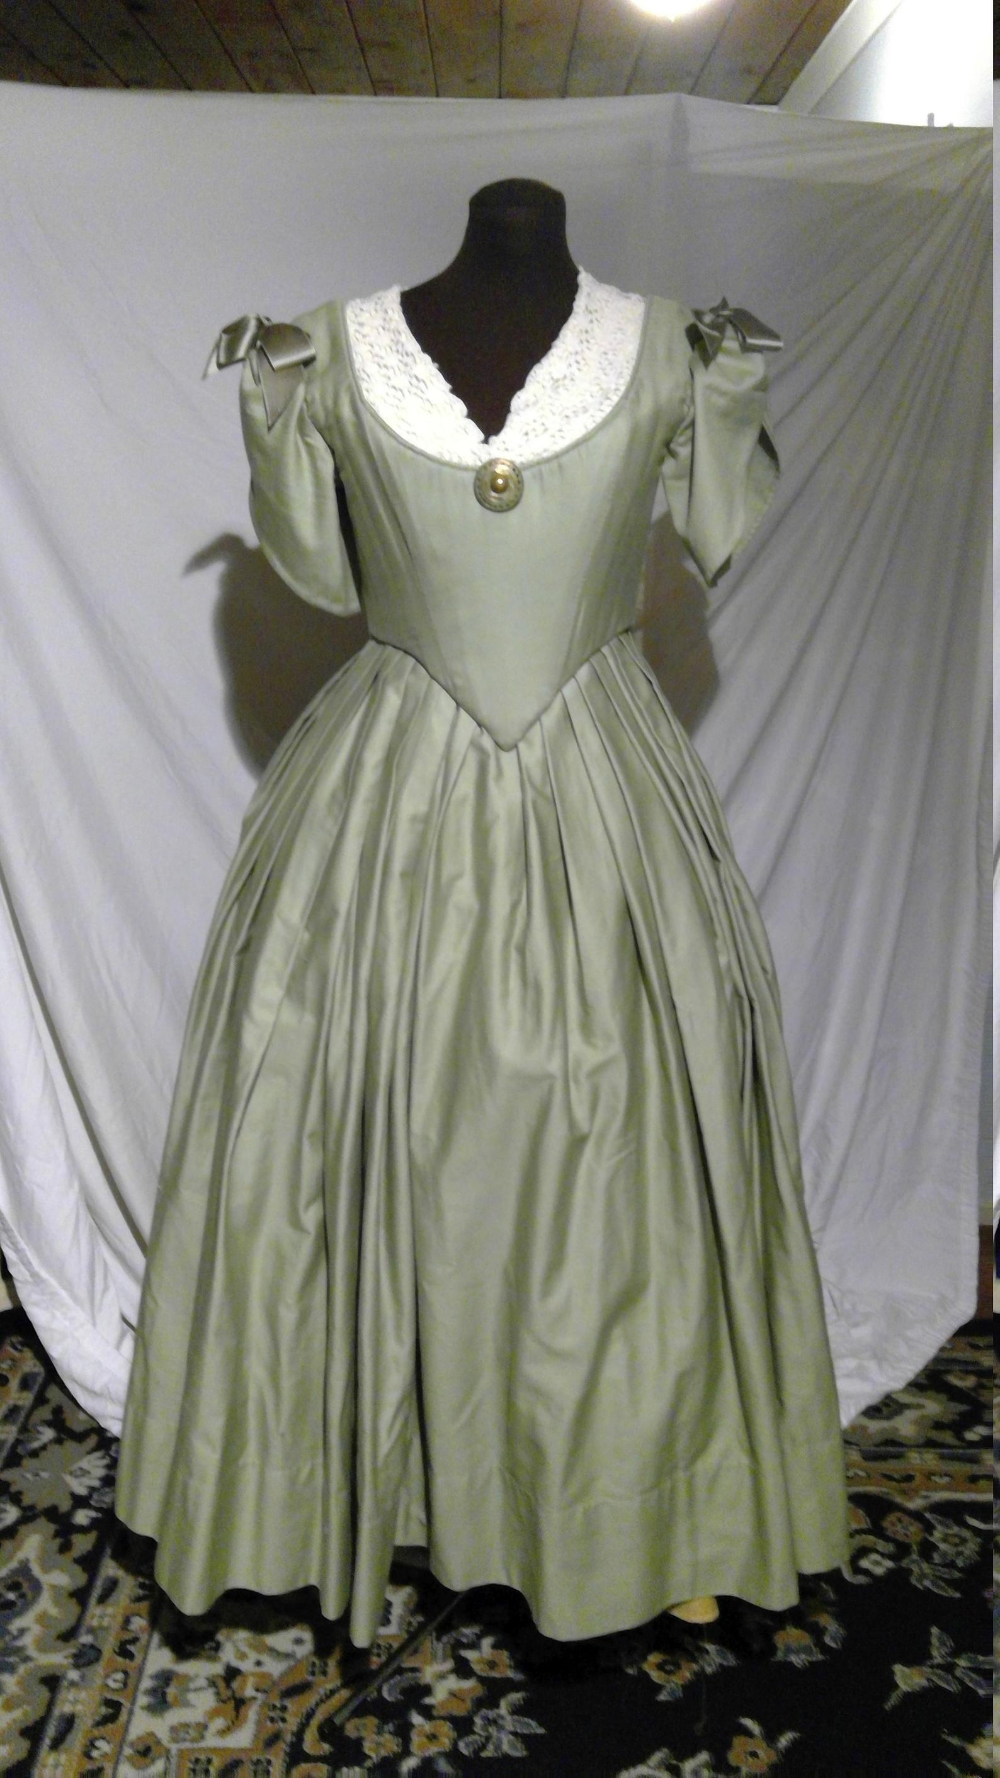 1840s Ish Early Victorian Ball Gown Evening Dress Costume Etsy Victorian Ball Gown Ball Gowns Evening Dresses [ 1778 x 1000 Pixel ]